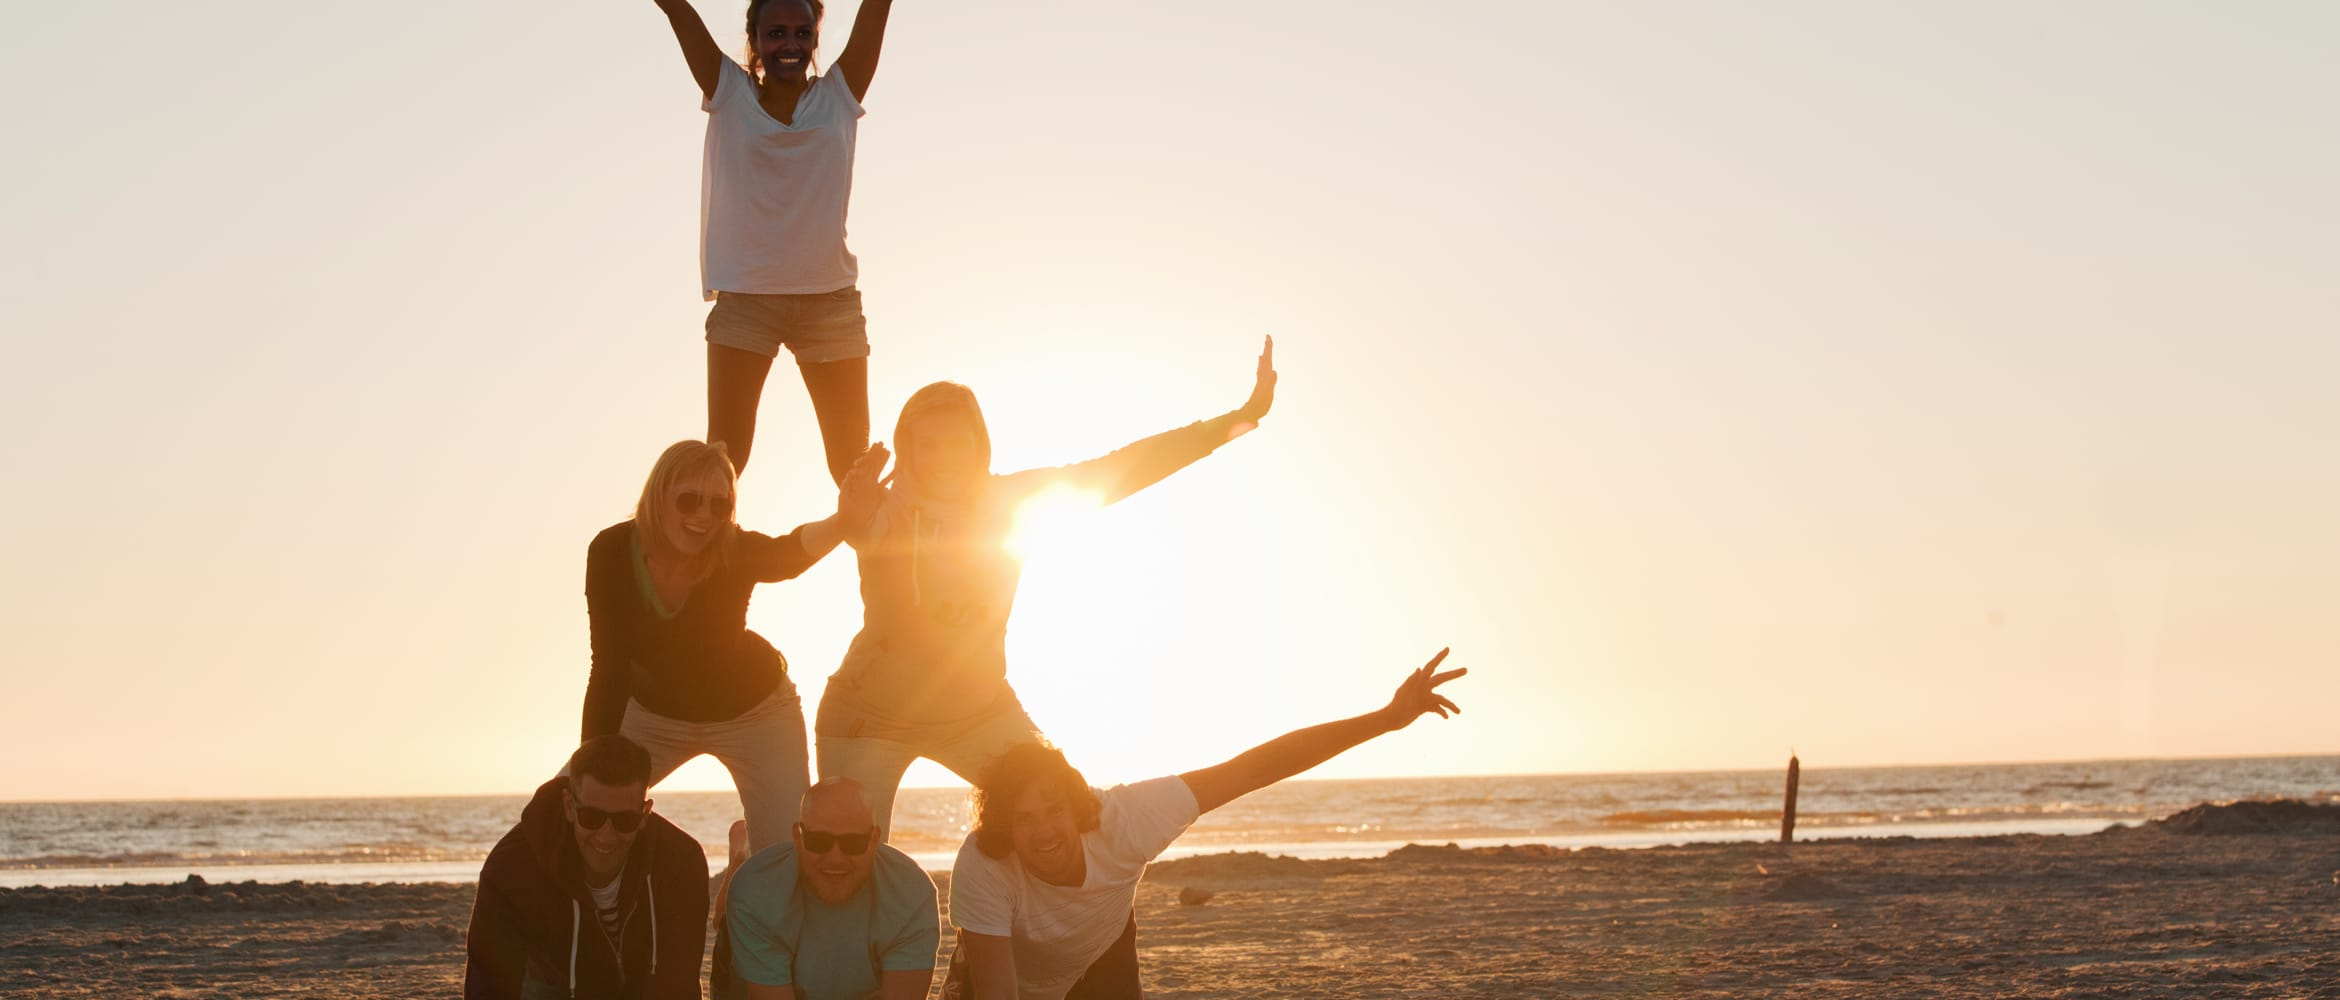 Young people making a human pyramid in the sun to illustrate Maslow's hierarchy of needs